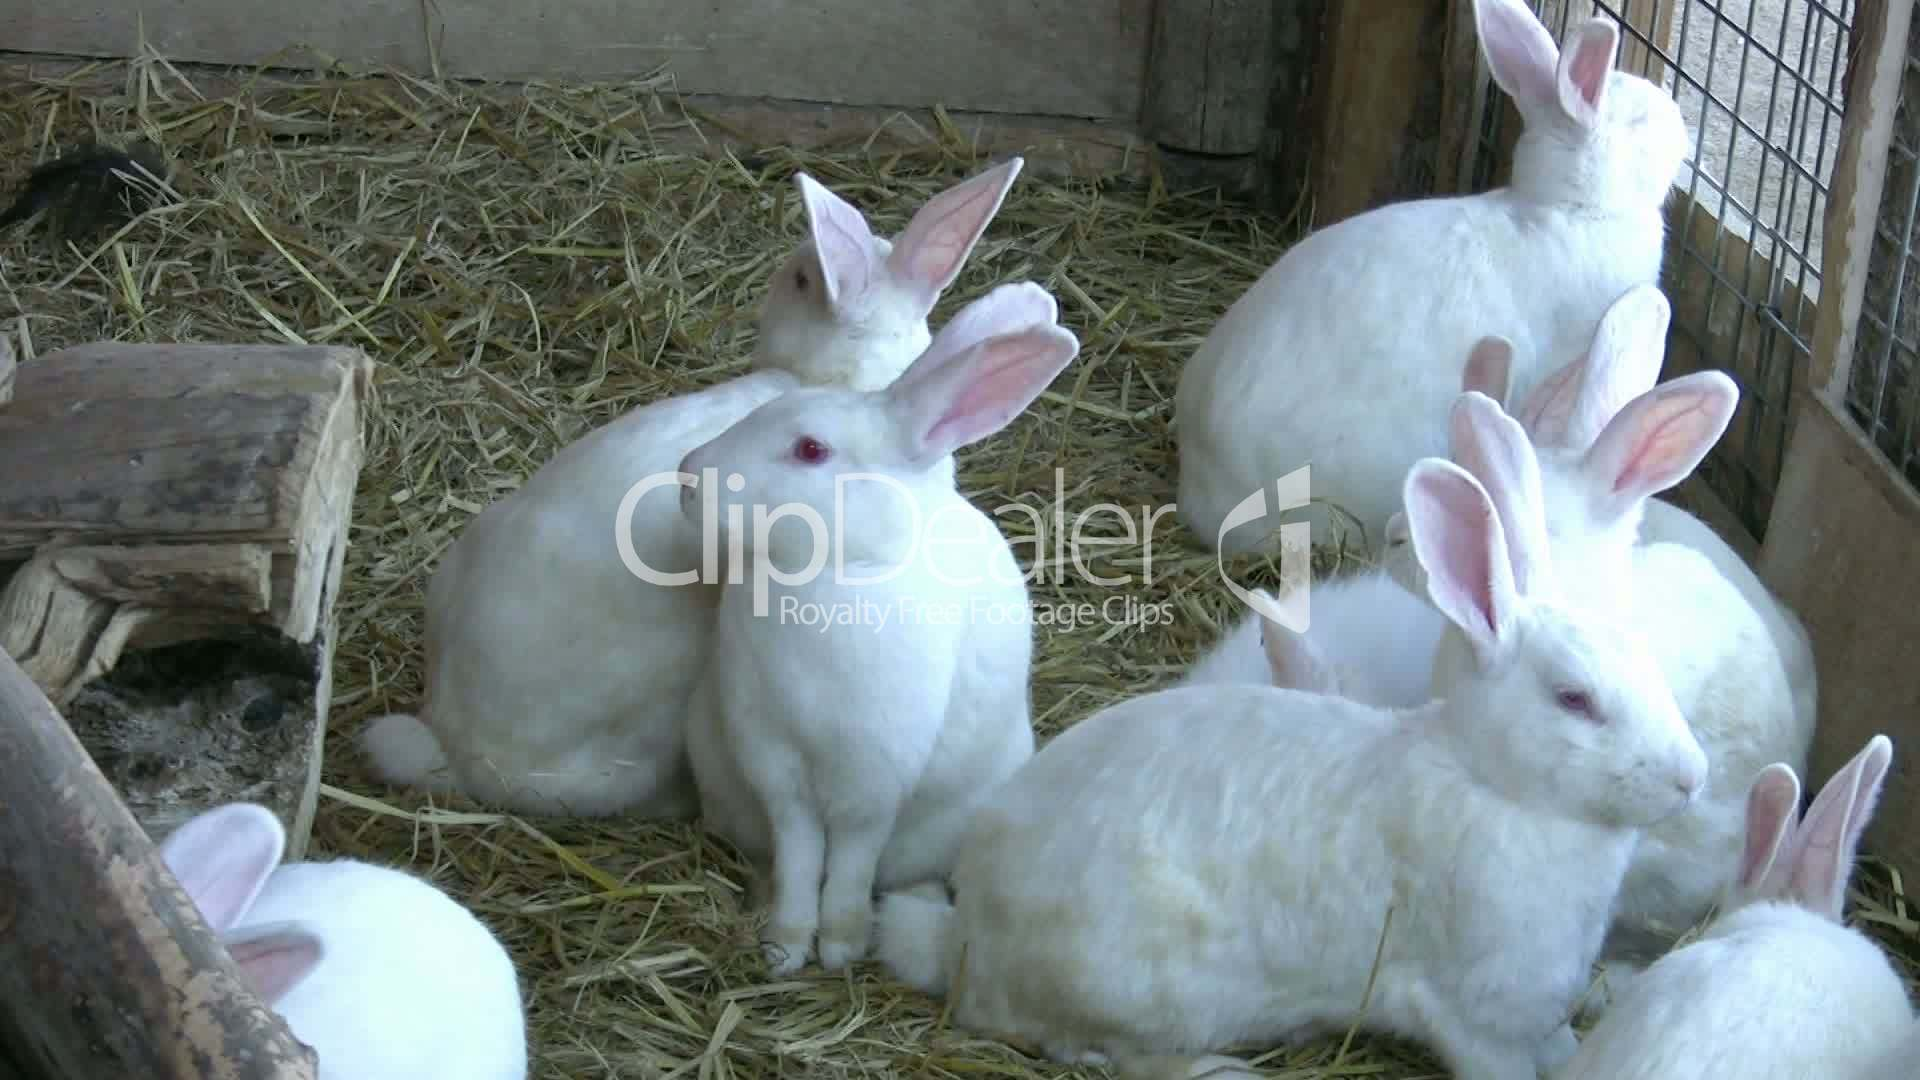 White Rabbits Royaltyfree video and stock footage